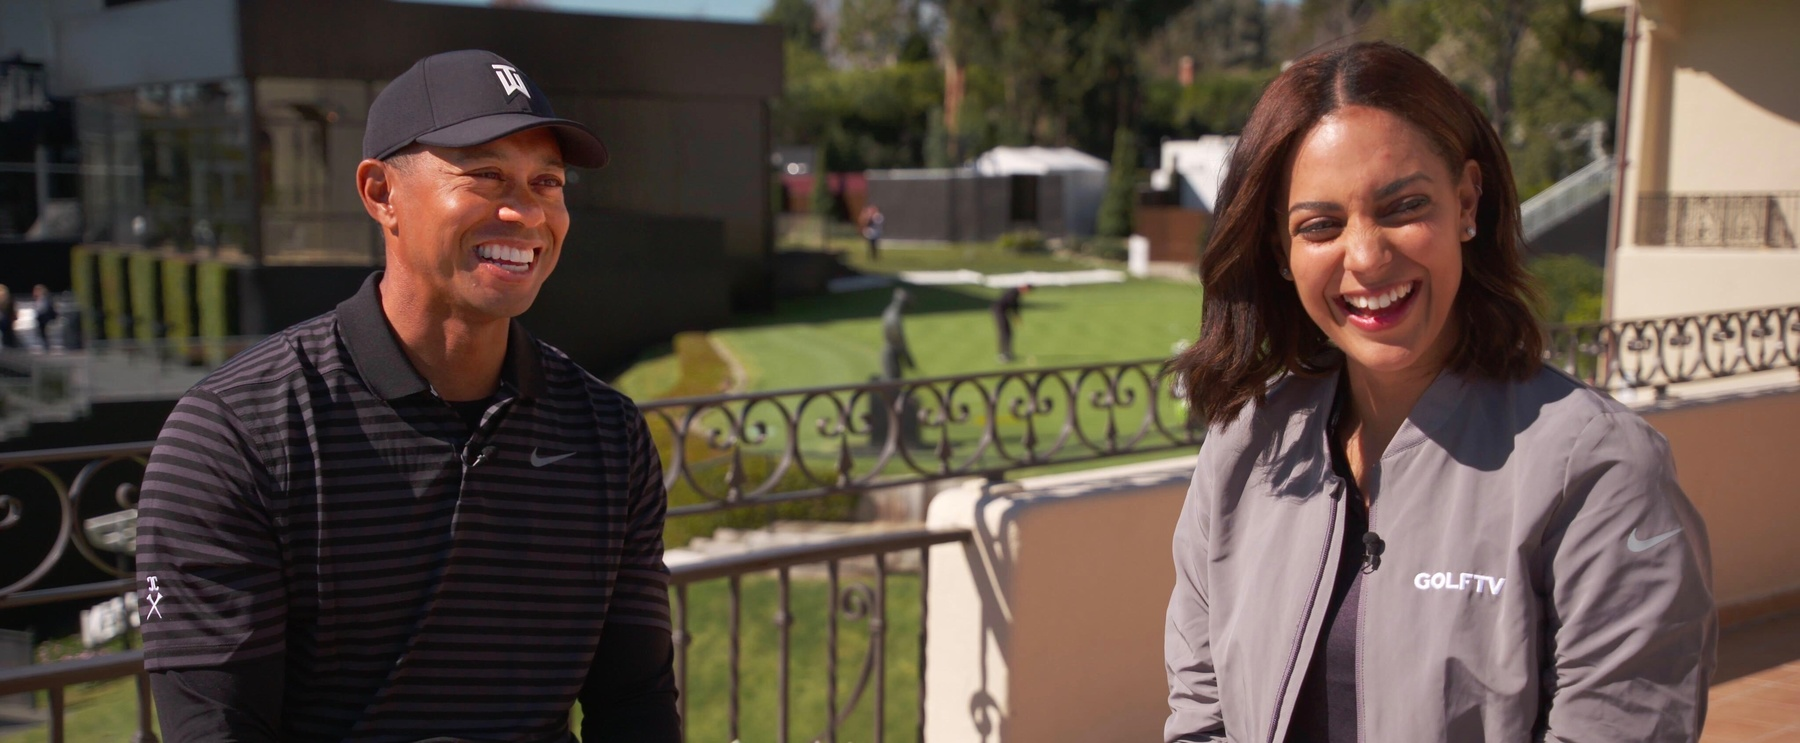 Henni Zuel, Tiger Woods – GOLFTV – At the Genesis Open, an event that benefits the TGR Foundation (1)